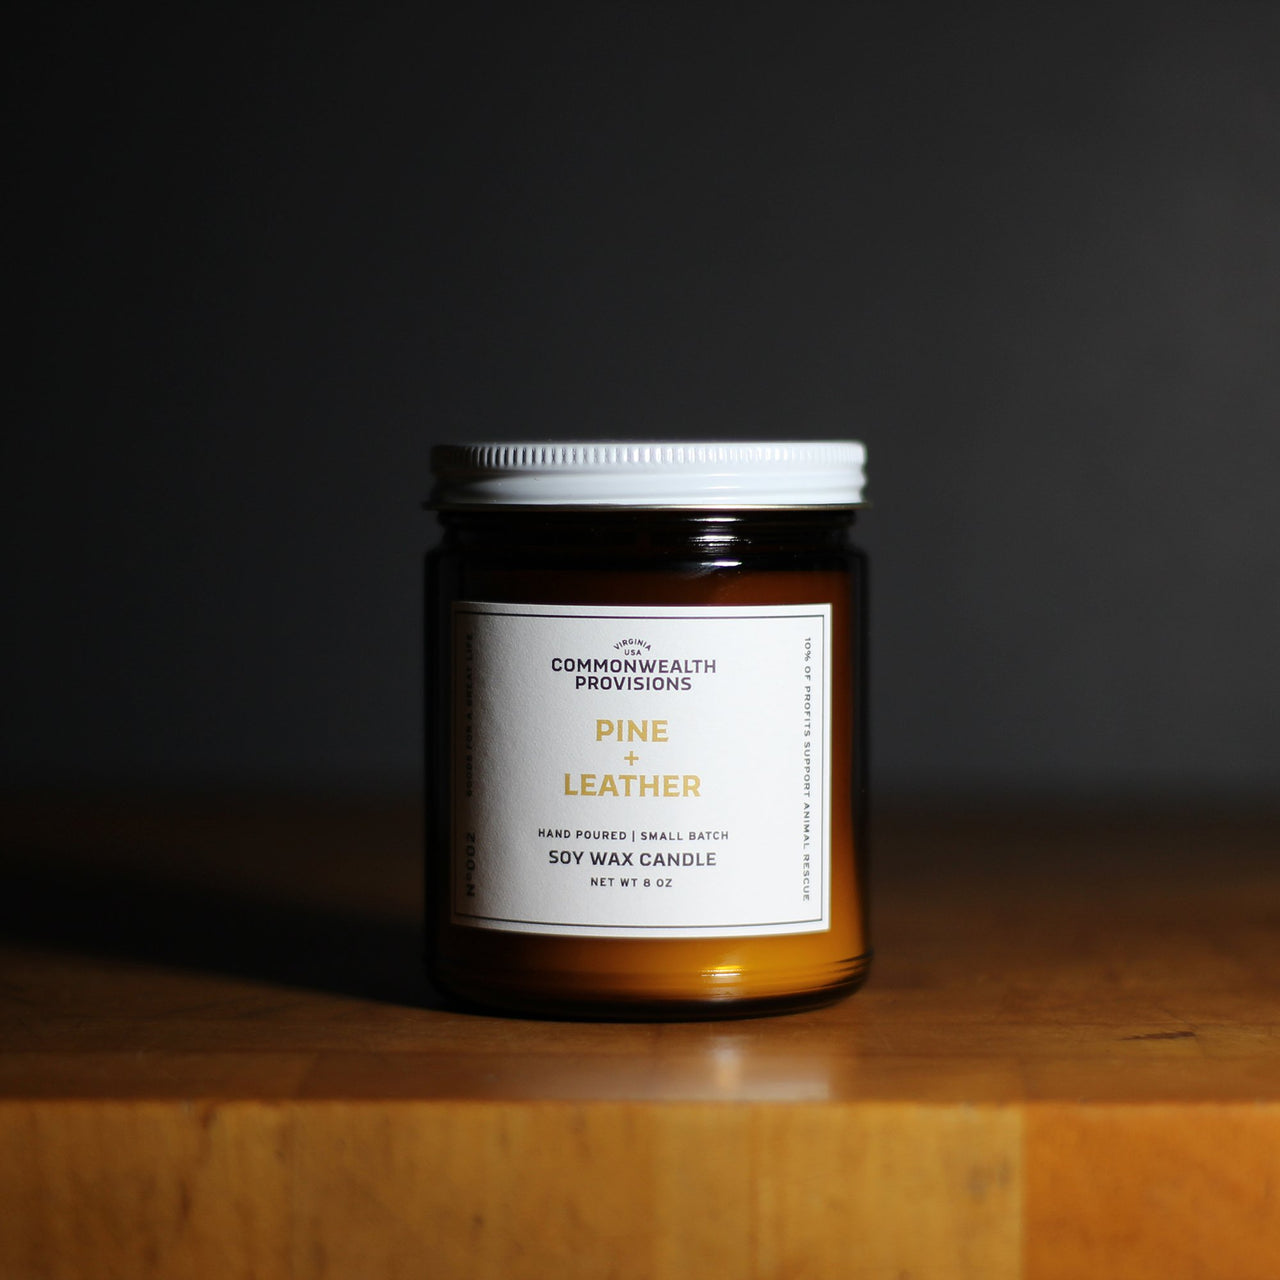 Pine & Leather - Soy Wax Candle